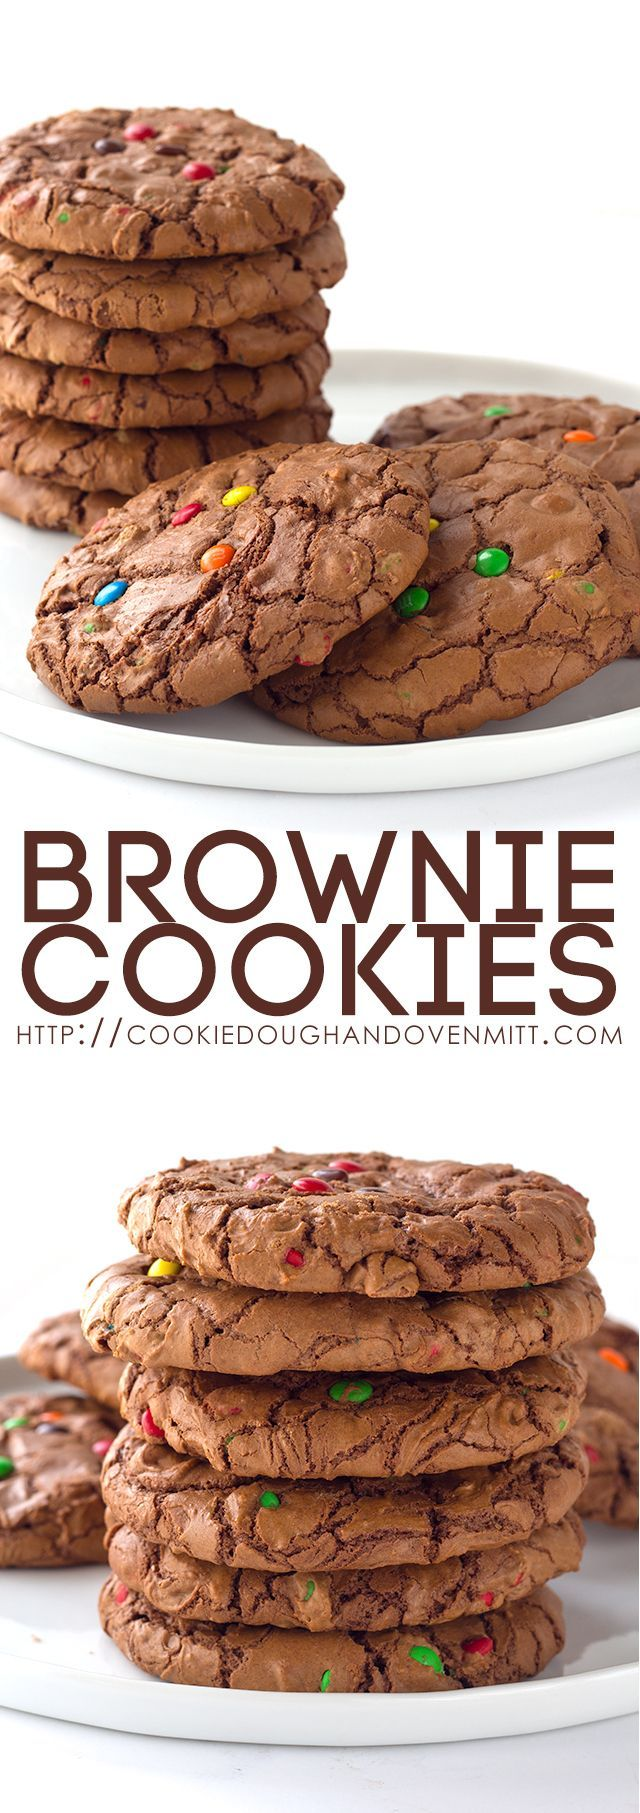 These shiny crinkle topped brownie cookies are perfection! They're loaded with M&M's and semi-sweet chocolate chips. They look and taste like a brownie!